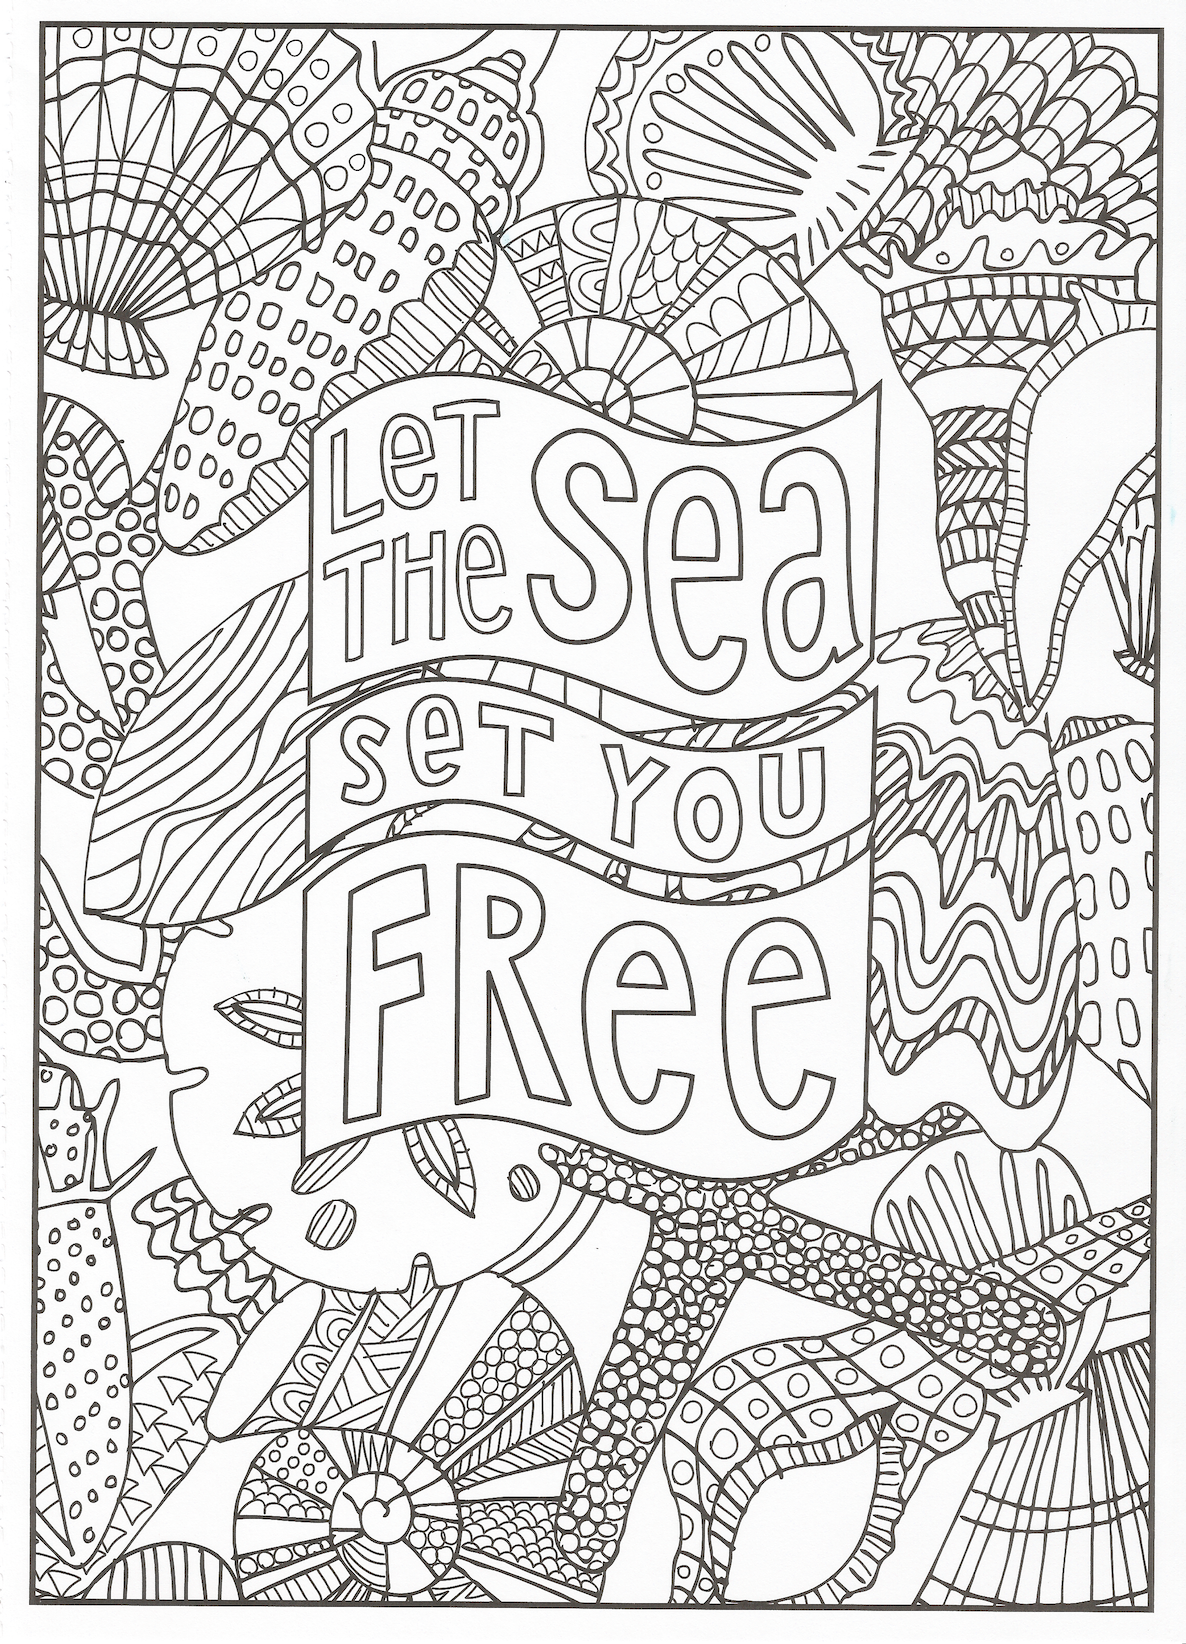 Timeless Creations Creative Quotes Coloring Page Let The Sea Set You Free Quote Coloring Pages Coloring Pages Inspirational Abstract Coloring Pages